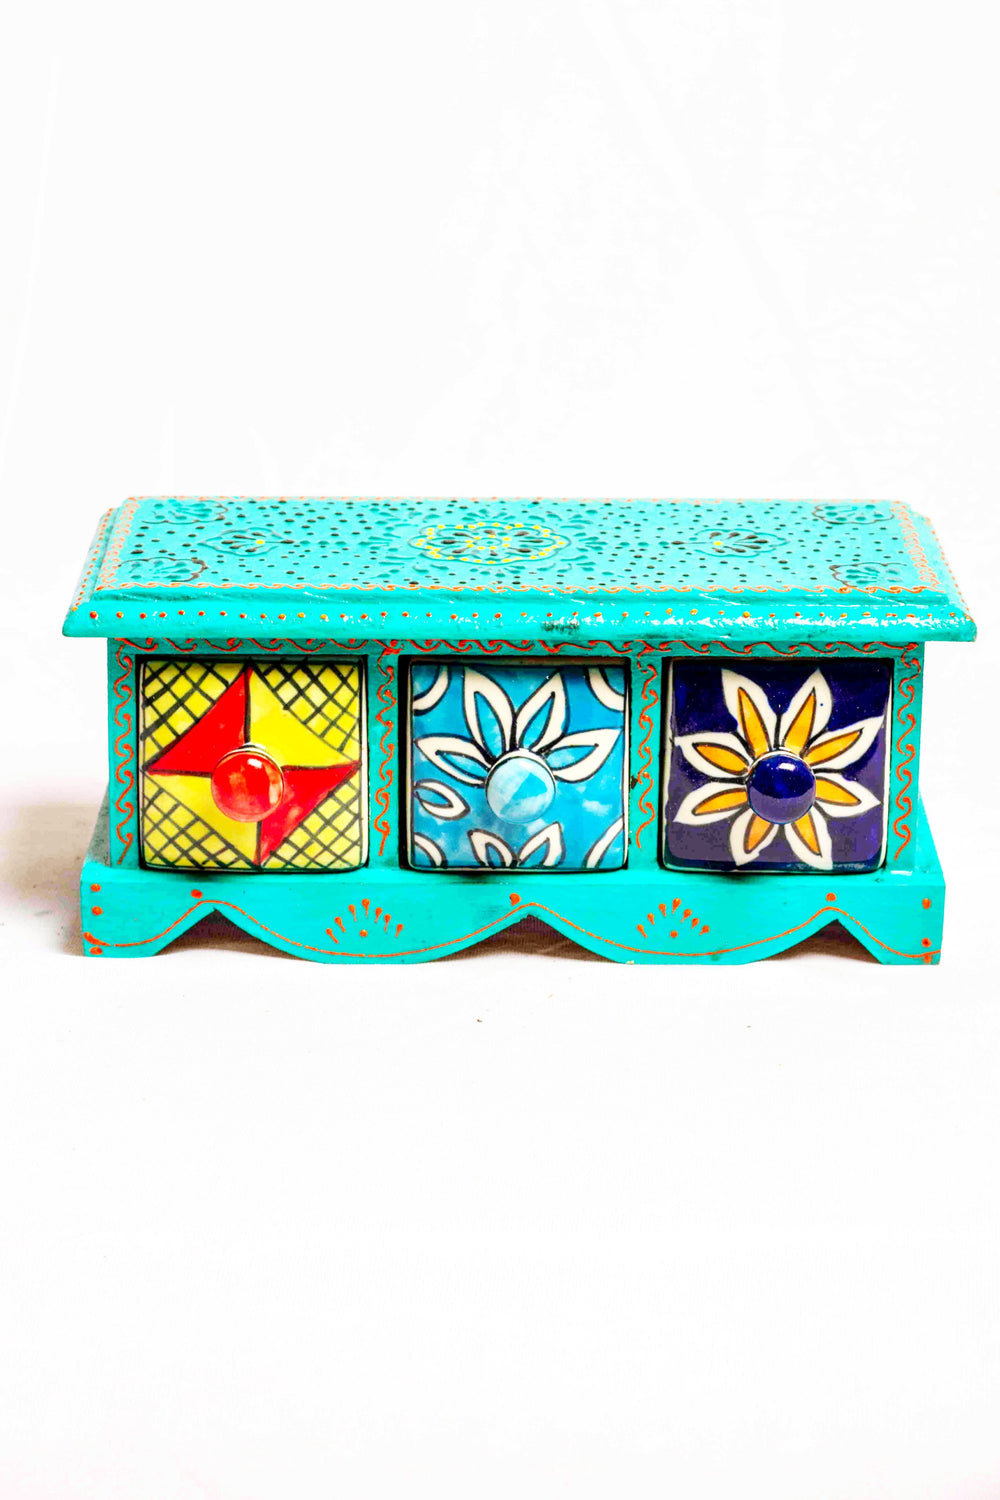 Chest of drawers in a green framed wooden box with painted motifs, with 3 ceramic drawers